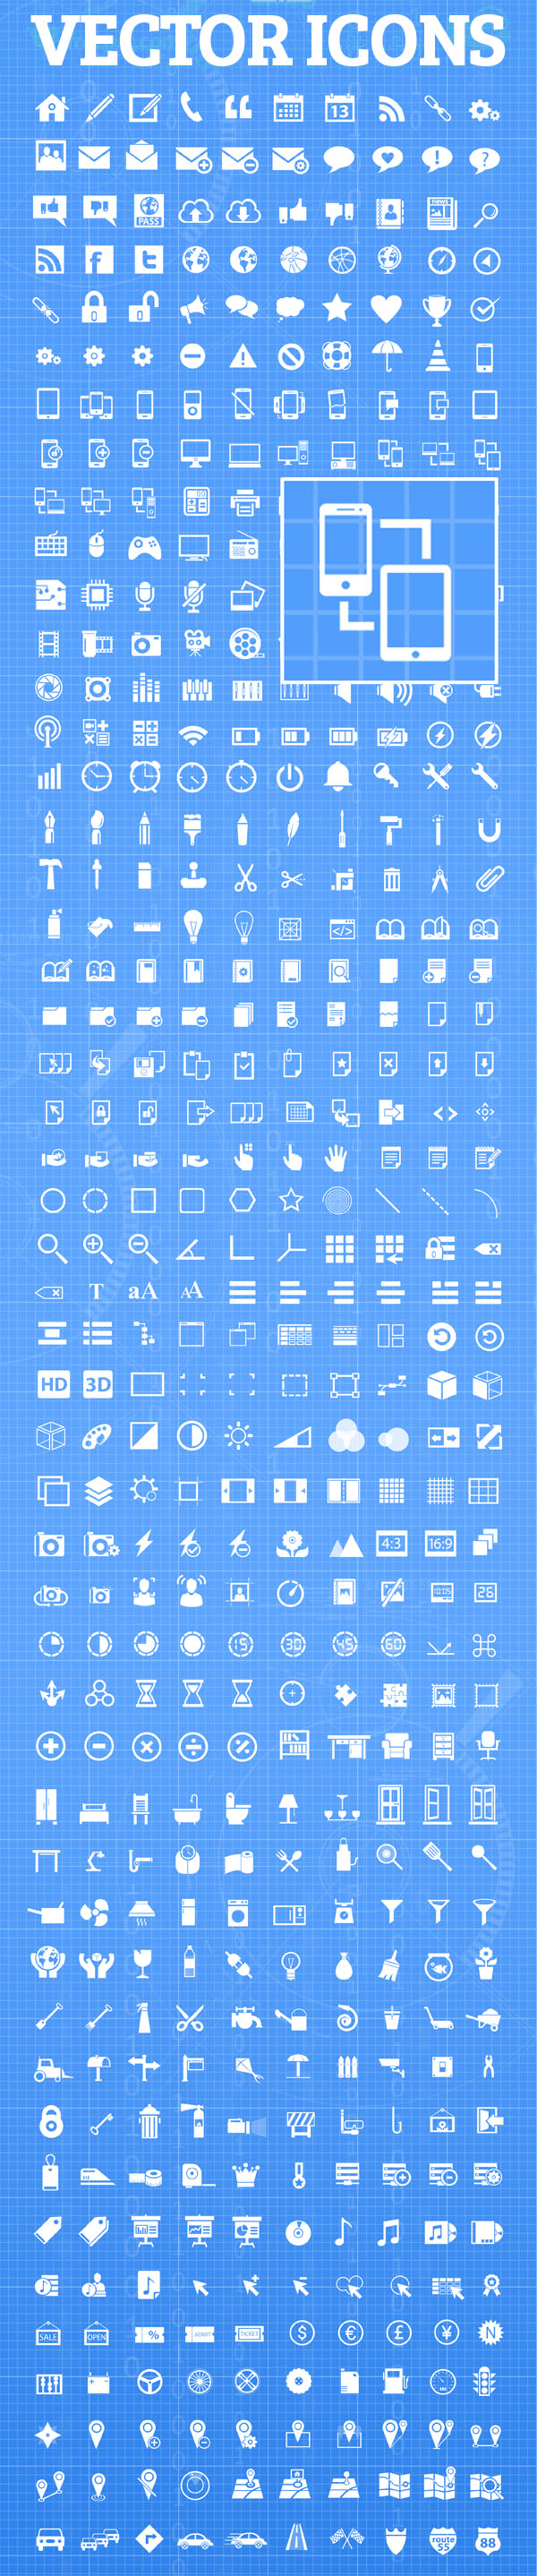 Mega Pack Vector Icons